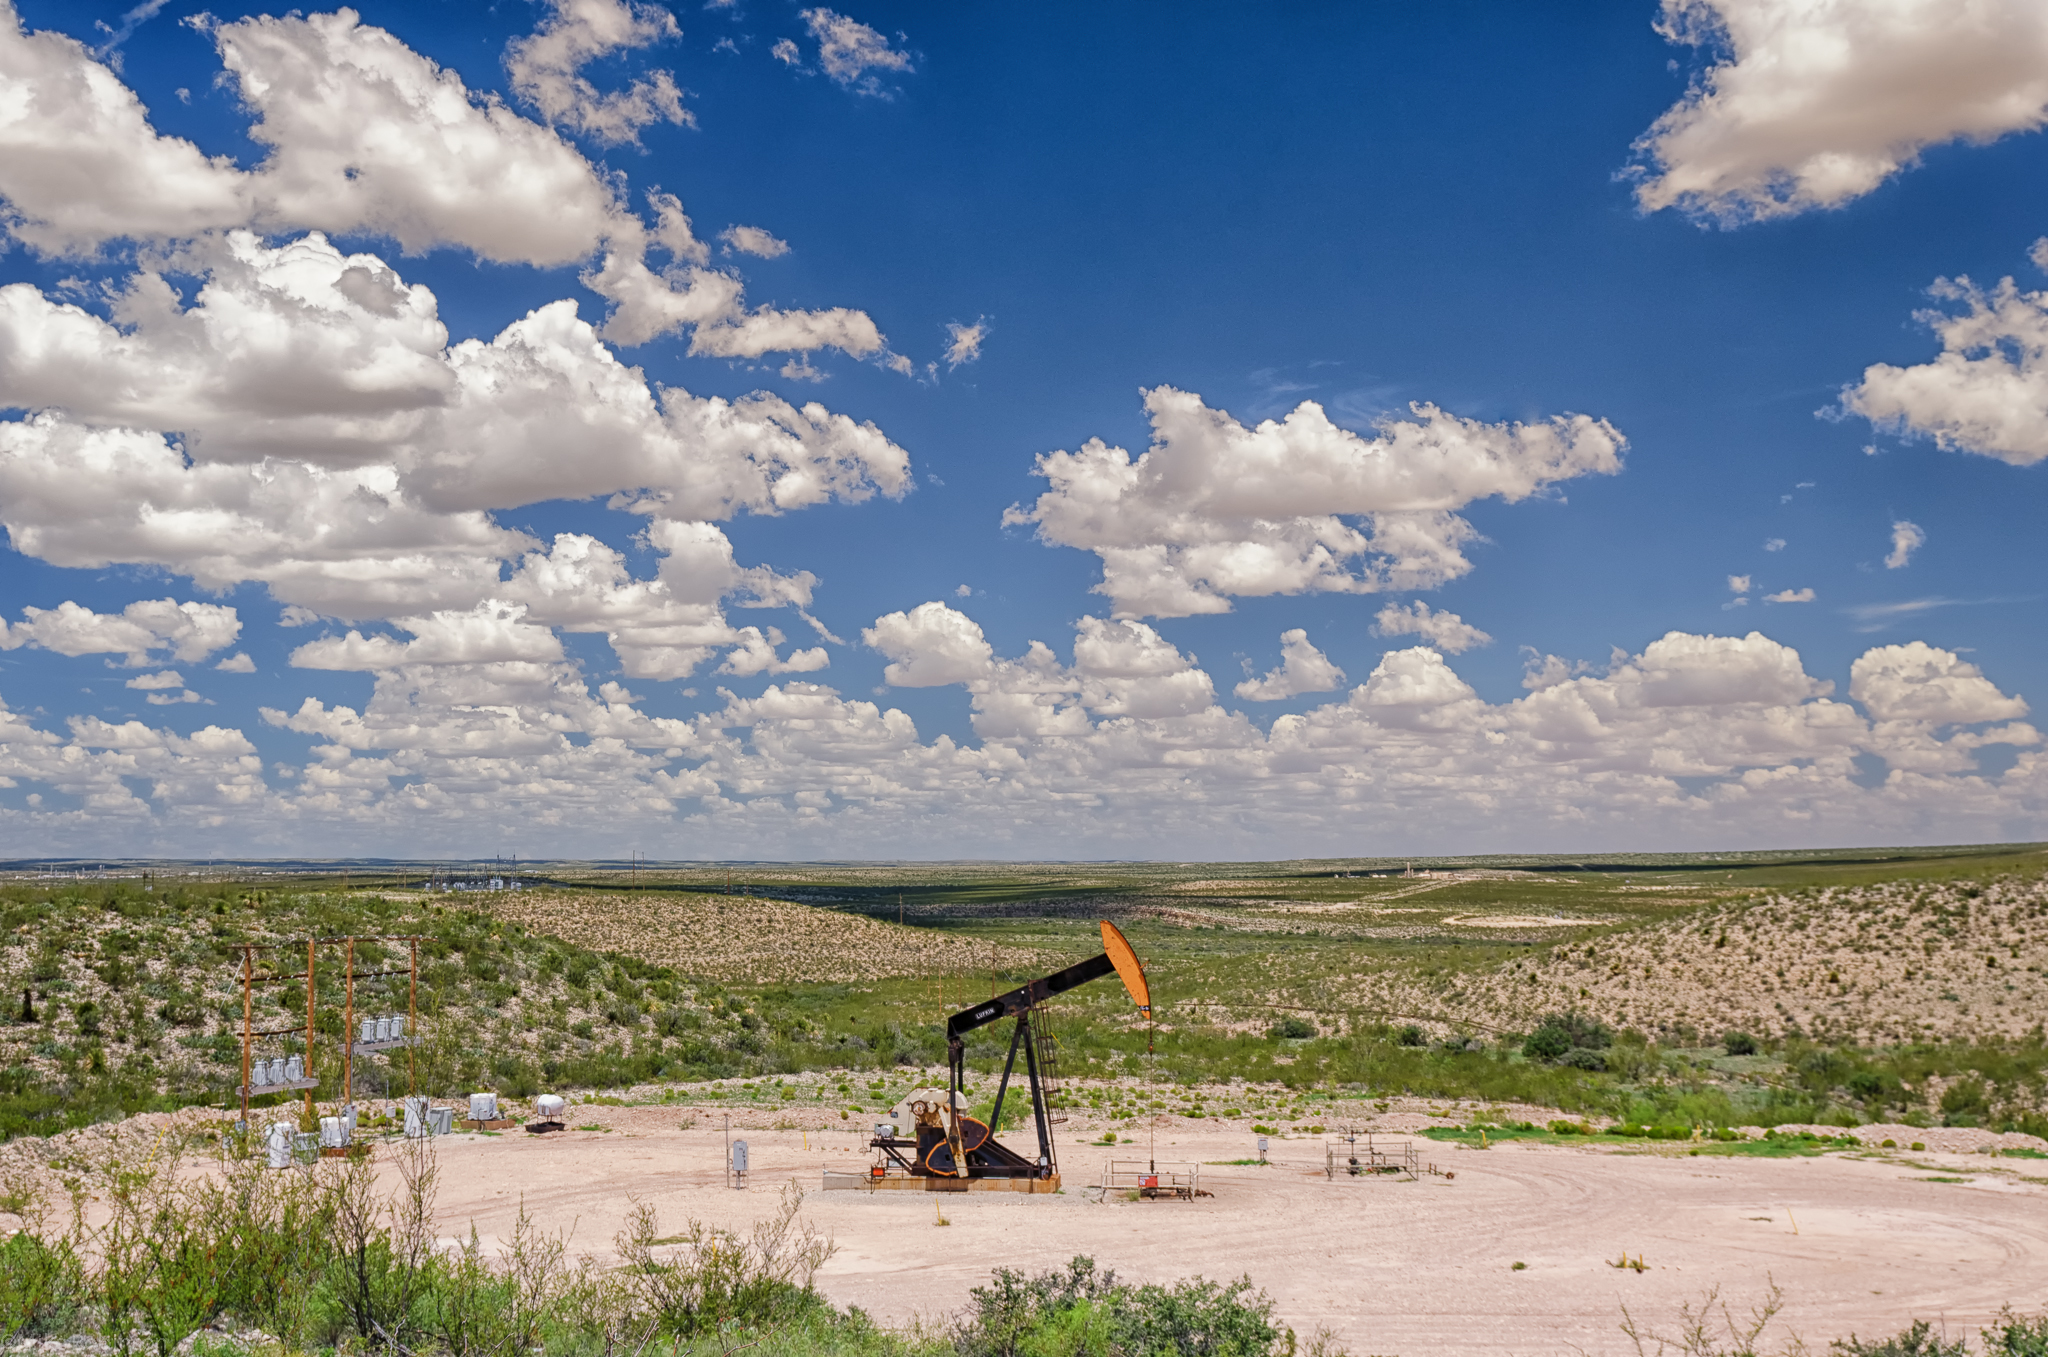 This Is What A Lot Of West Texas Looks Like U2013 Mostly Flat, Amazing Blue  Skies, And Oil Wellsu2026 Part 84